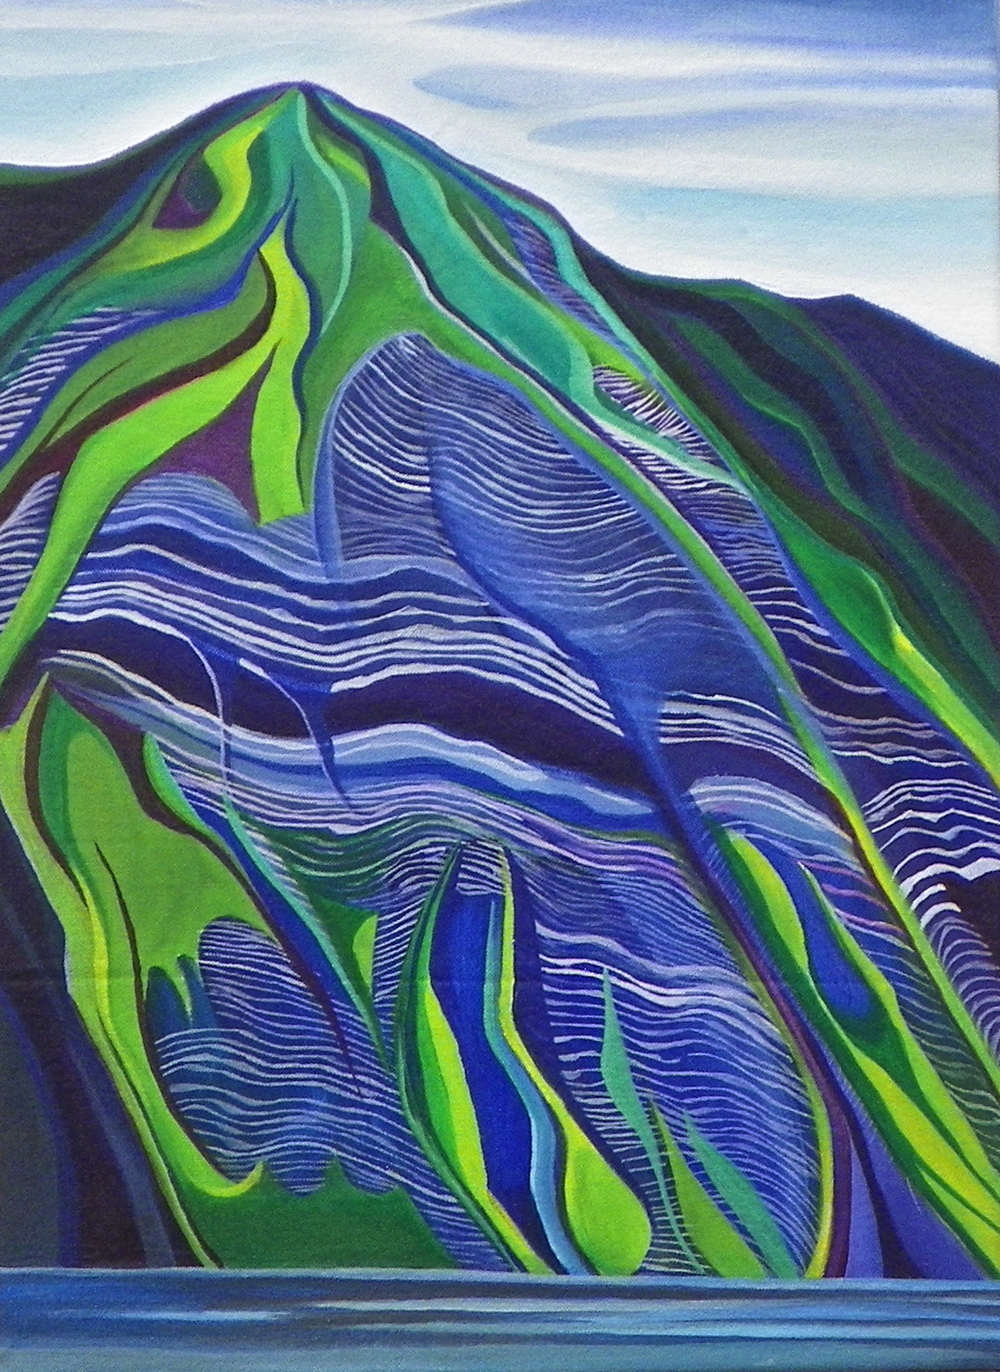 "Beiderman's Bluff -  Oil and a crylic   on canvas - 22"" x 16"" - 2012"